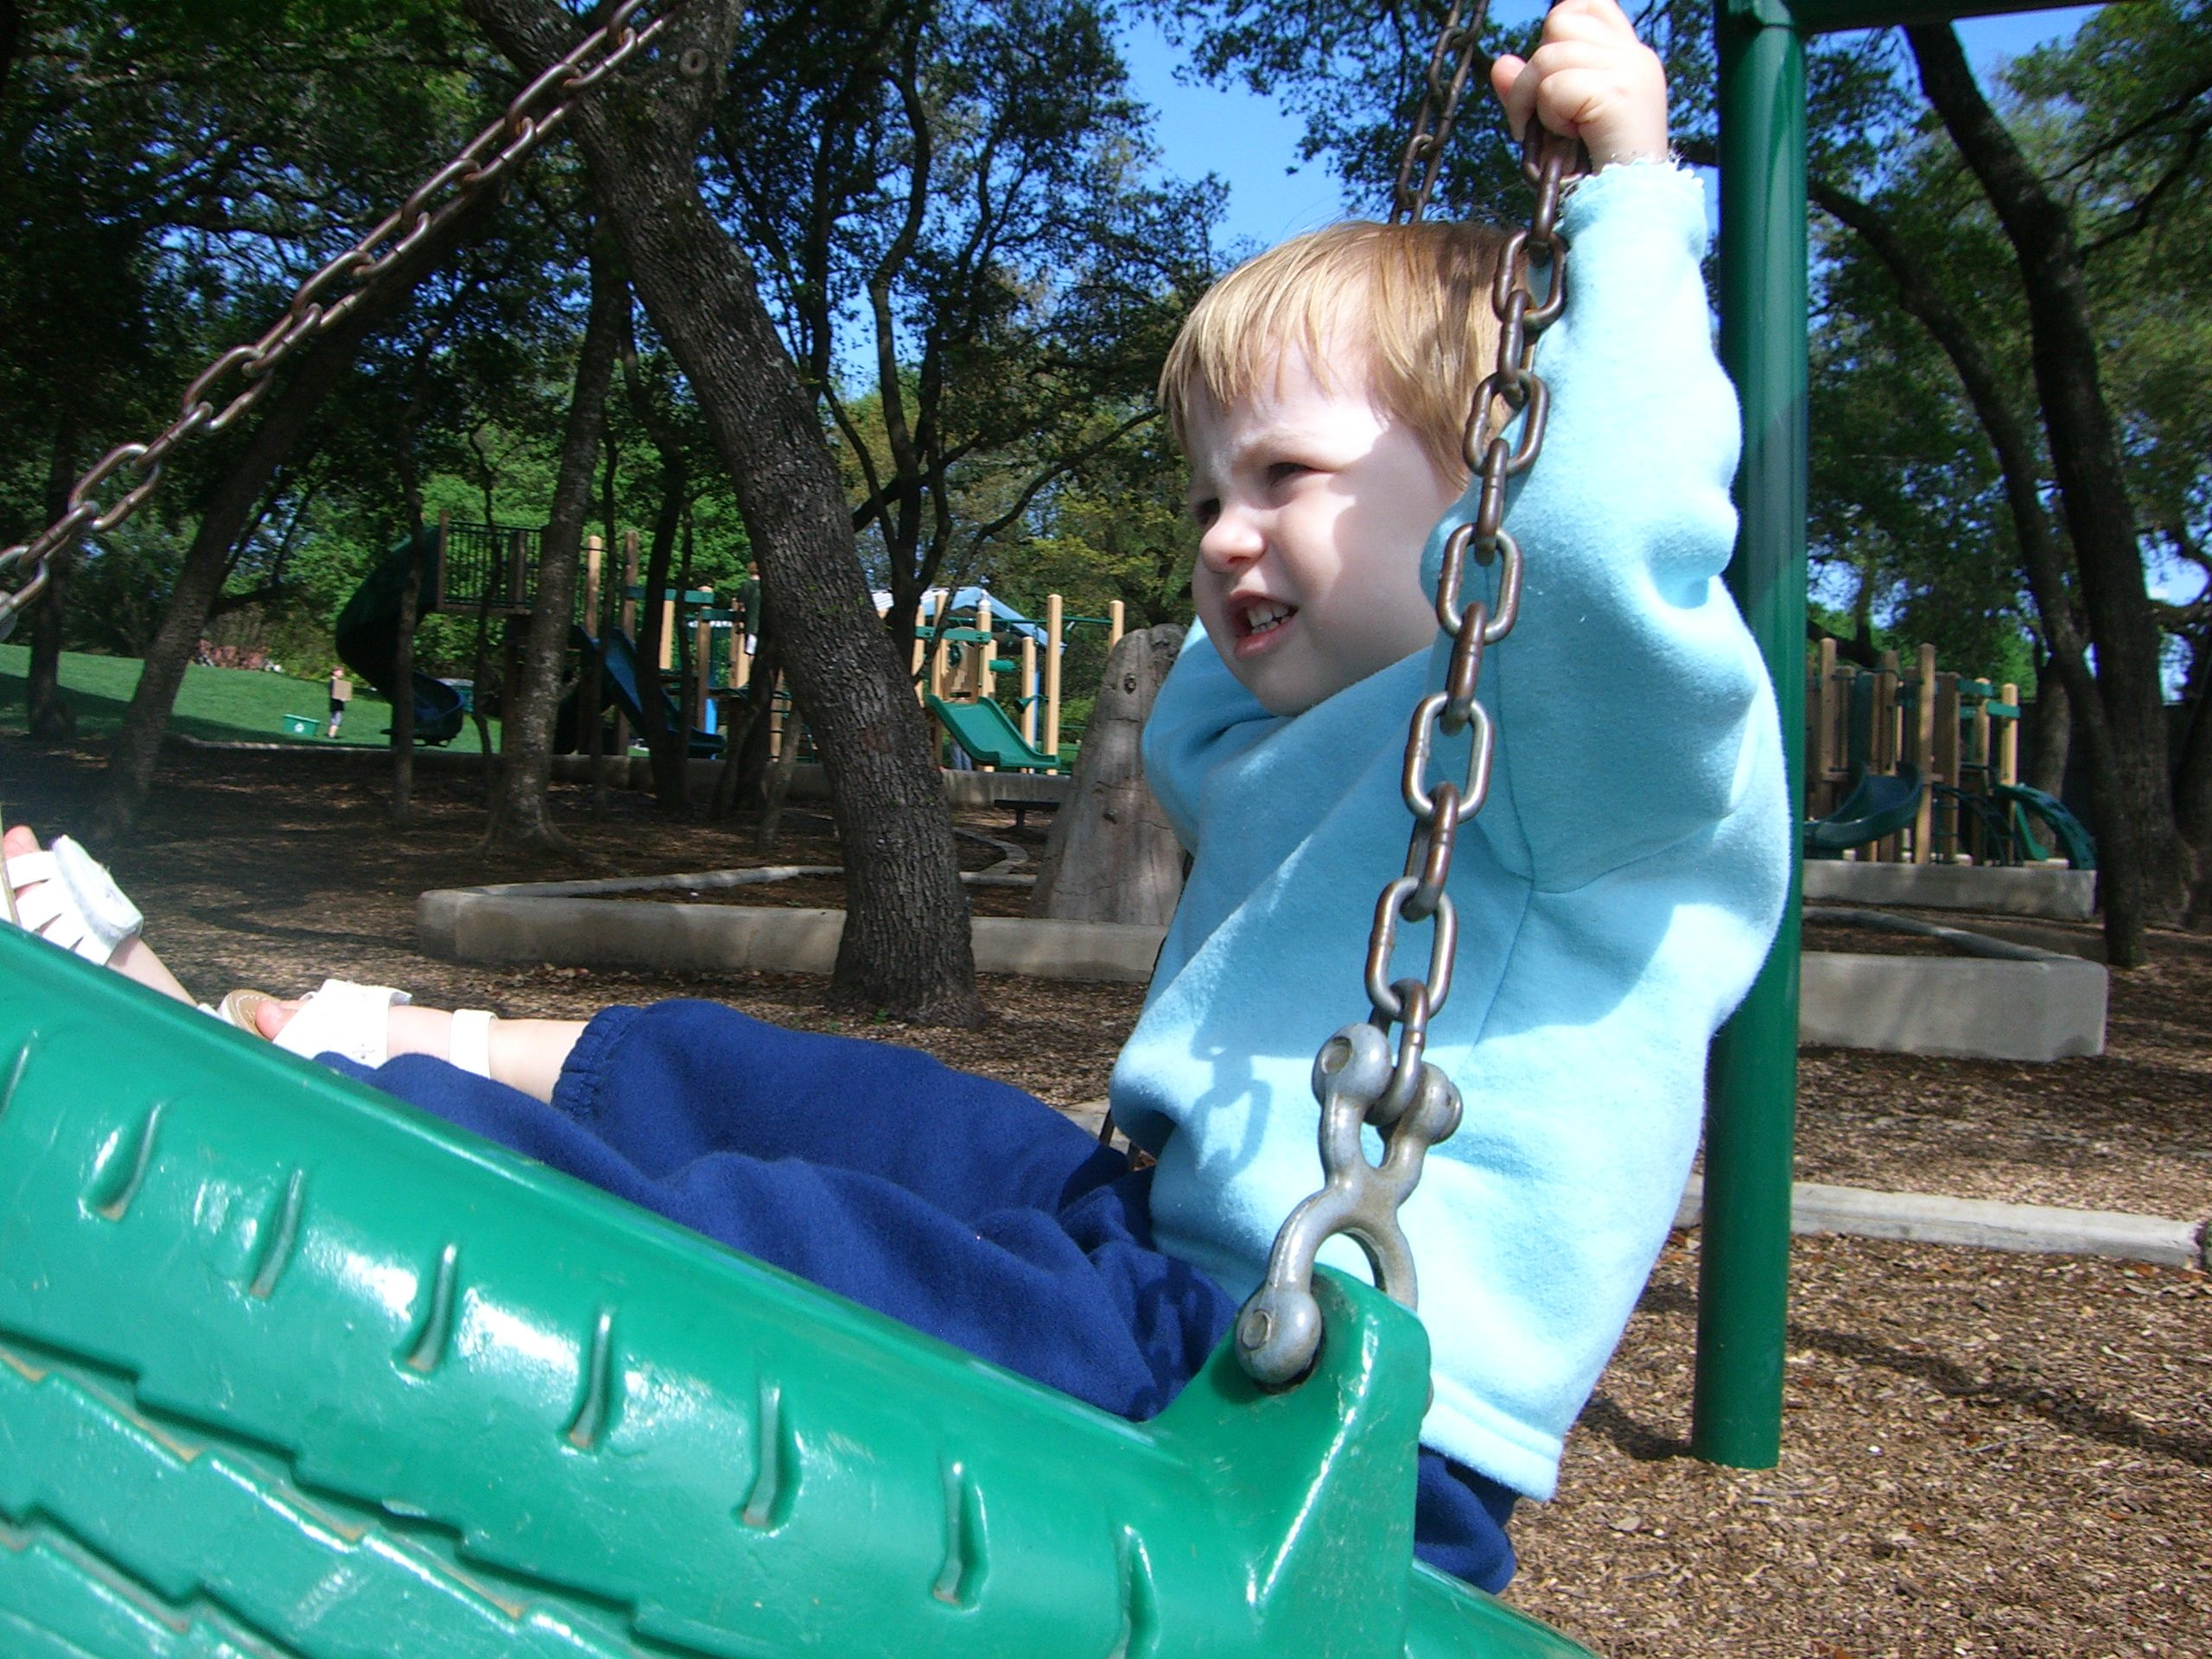 E on a playground in a tire swing, March 2007